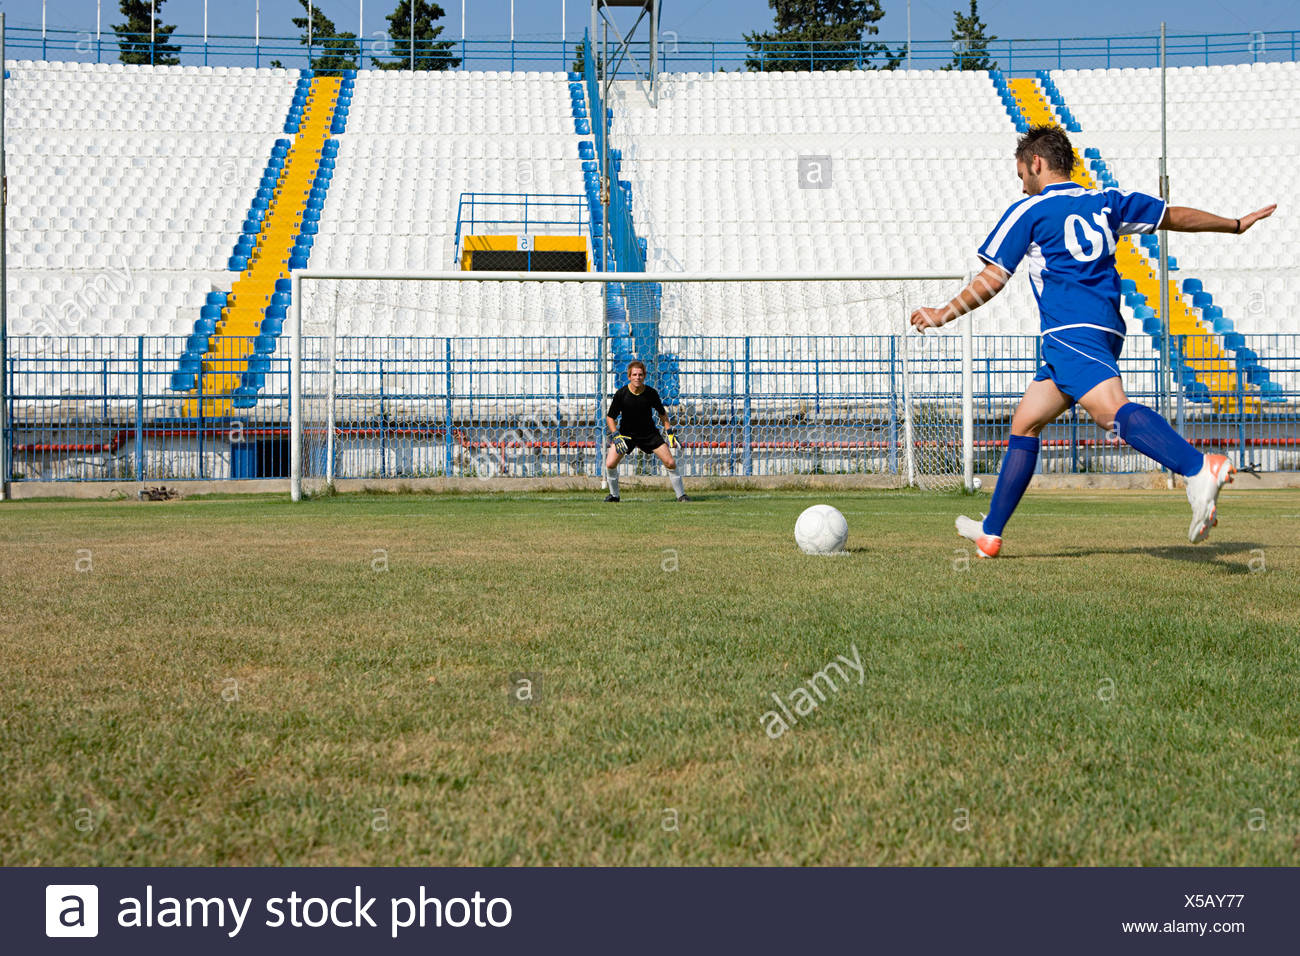 Footballer kicking football - Stock Image